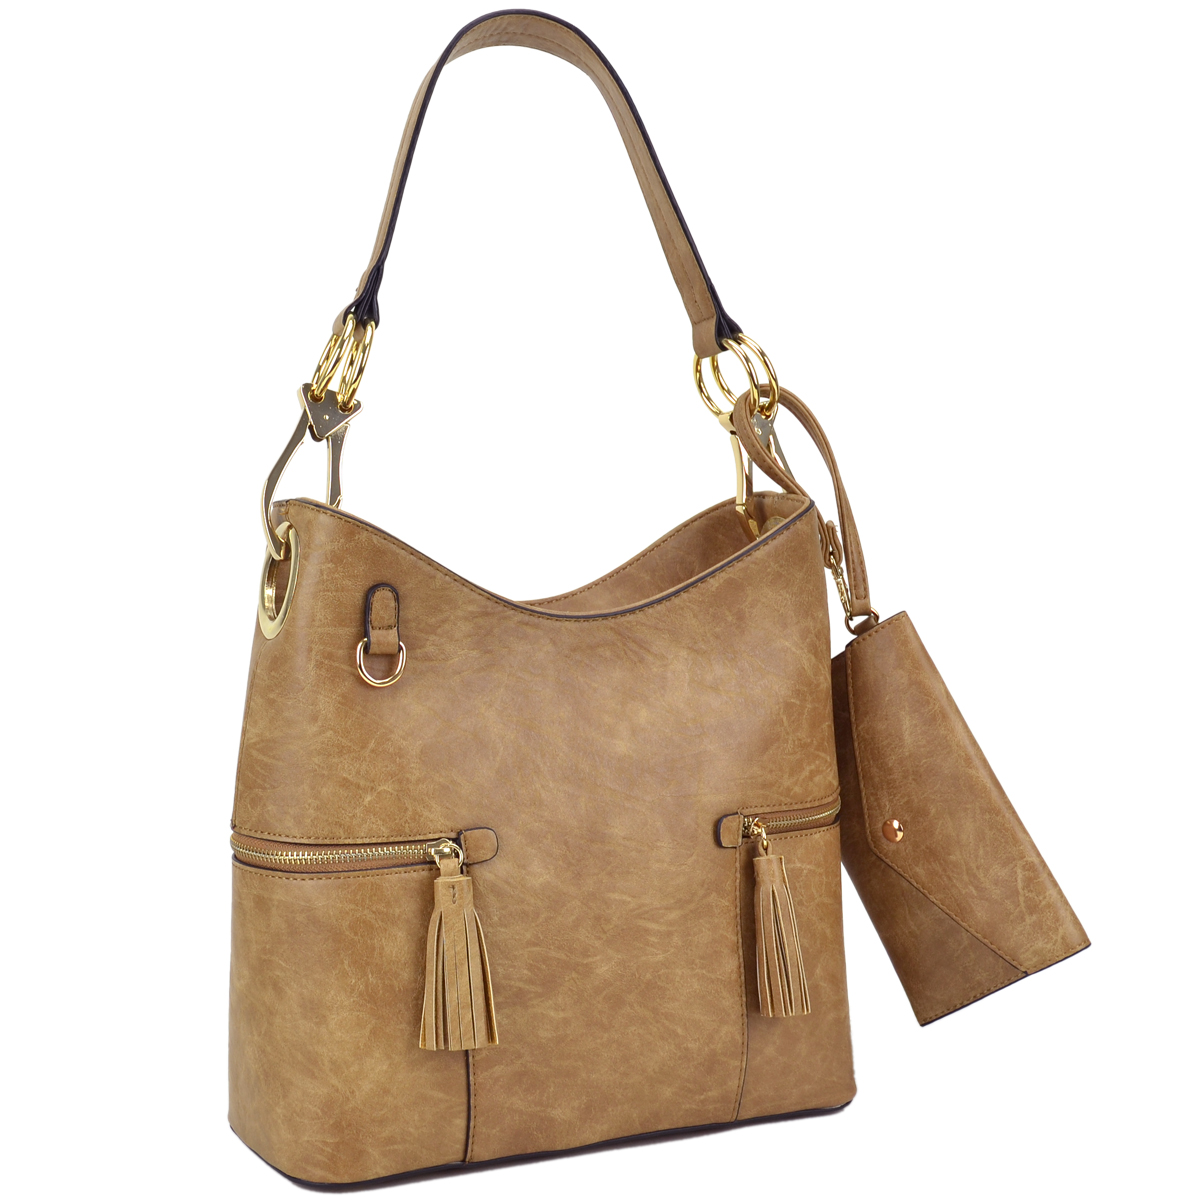 Dasein Classic Hobo Bag with Side Tassel zipped pockets and with Matching Wristlet